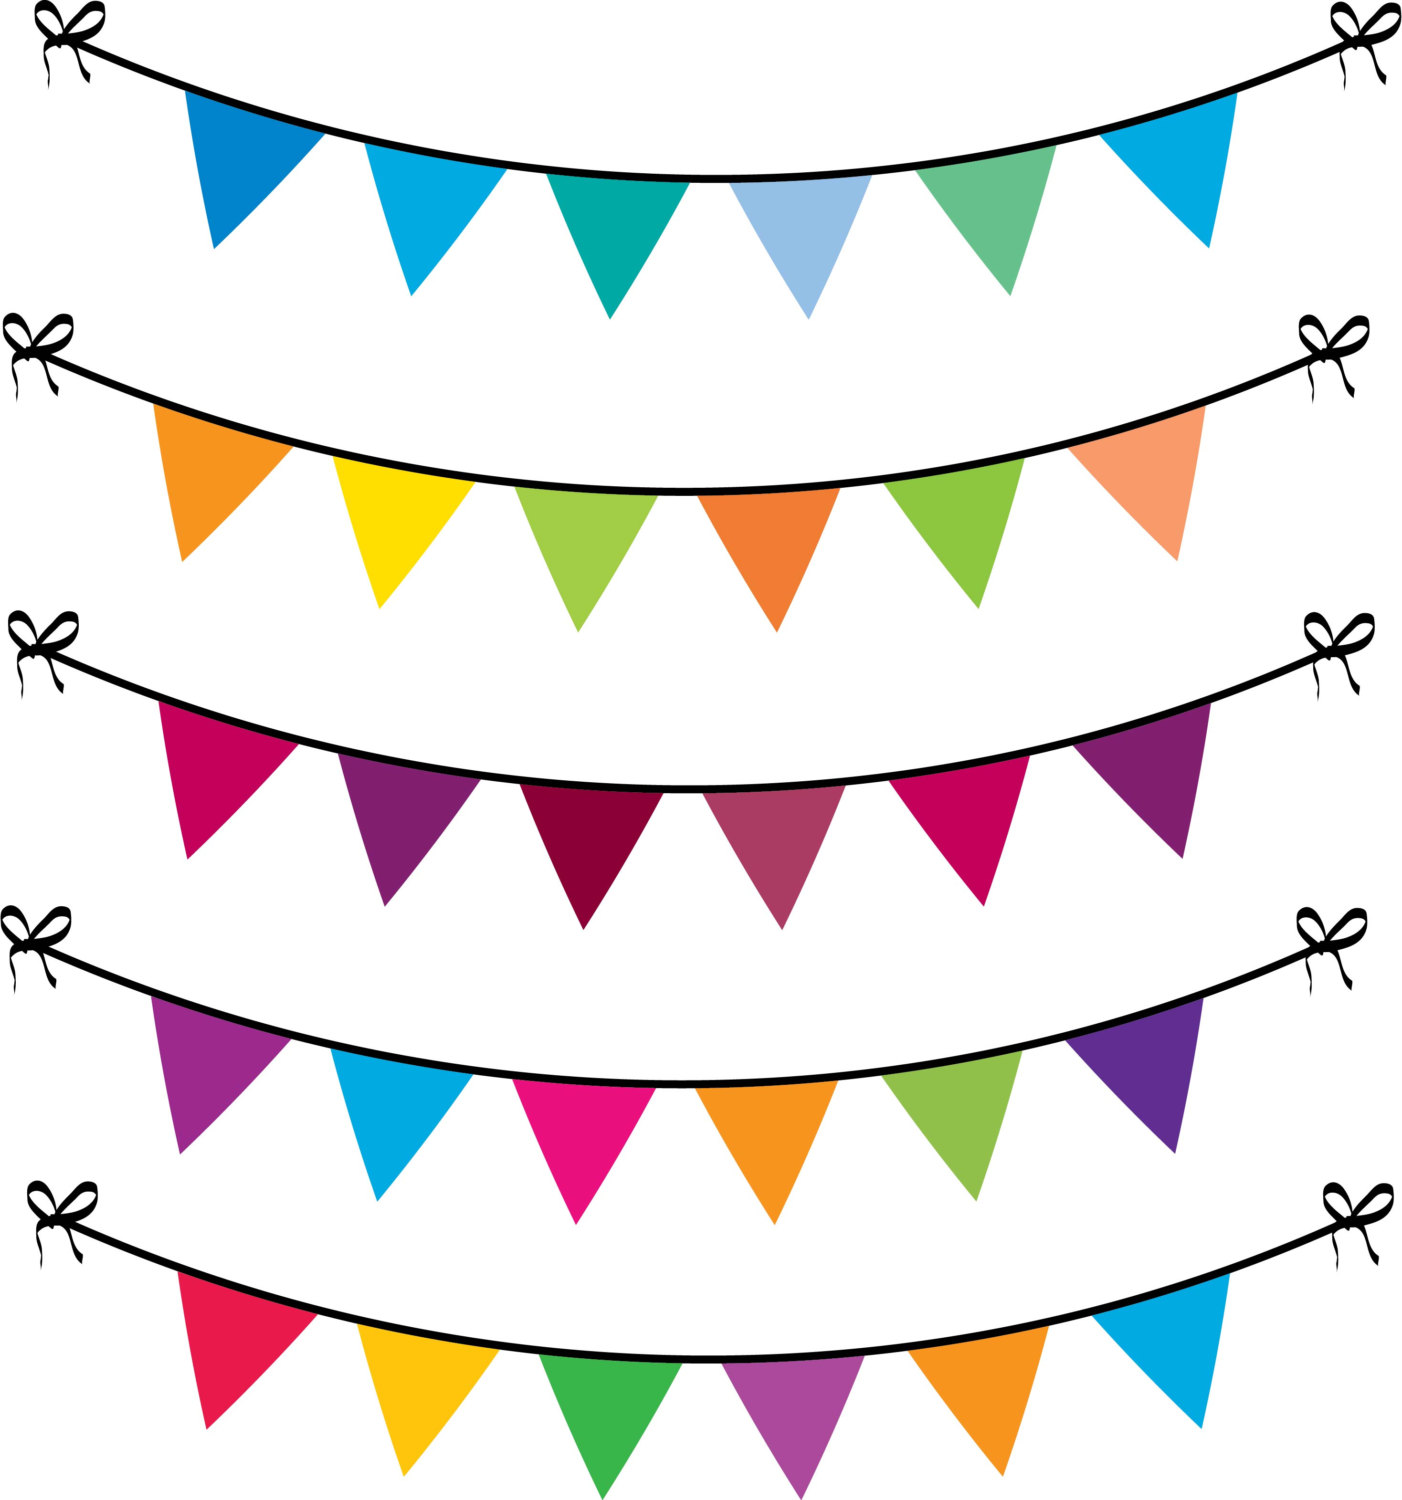 Bunting image clipart vector royalty free Free Bunting Cliparts, Download Free Clip Art, Free Clip Art on ... vector royalty free